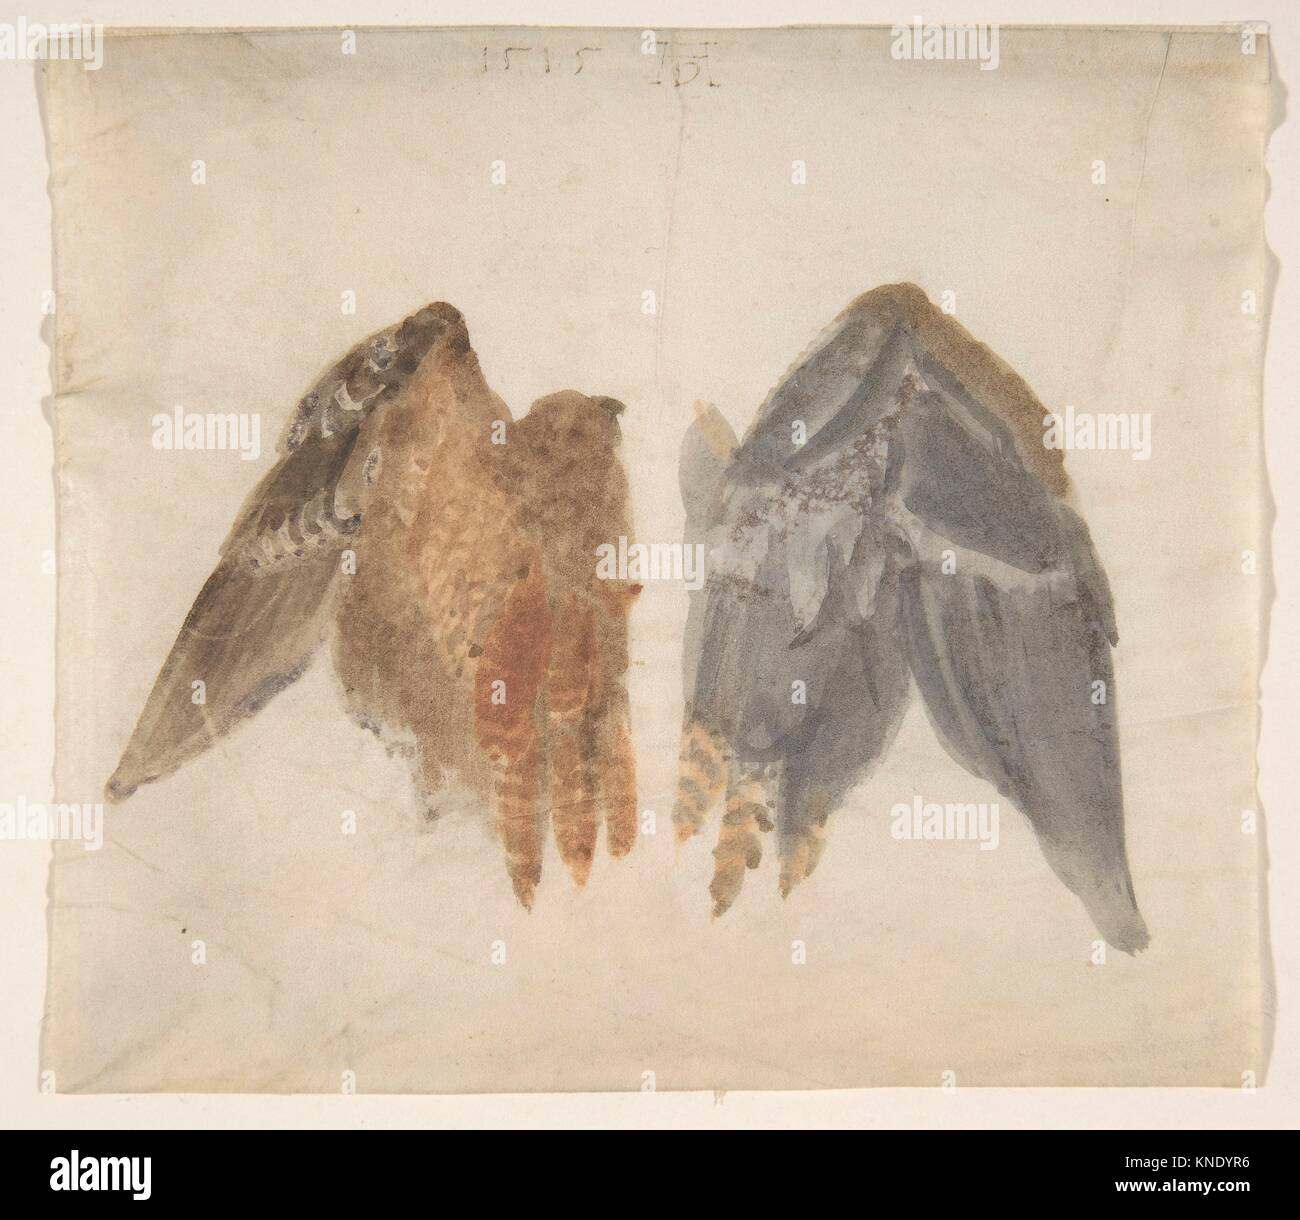 Bittern's Wings: study showing both sides. Artist: In the manner of Albrecht Dürer (German, Nuremberg 1471 - Stock Image